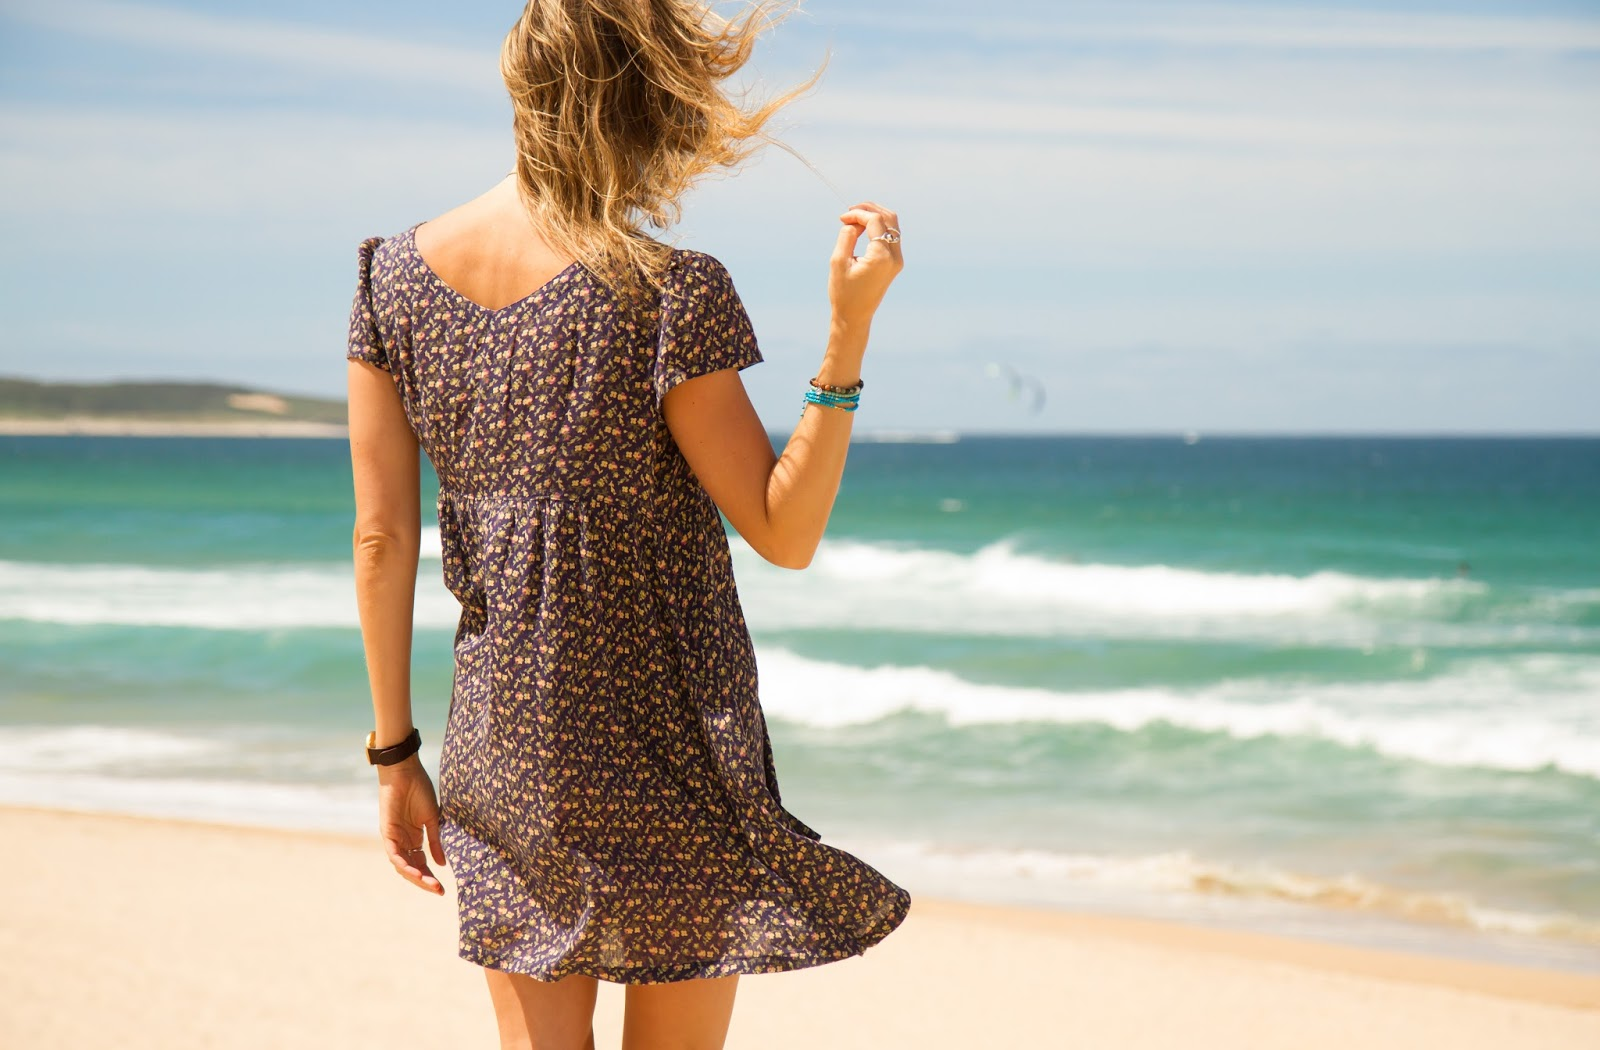 fashion and travel blogger, alison hutchinson, is wearing a floral ralph lauren dress at wanda beach in sydney, australia